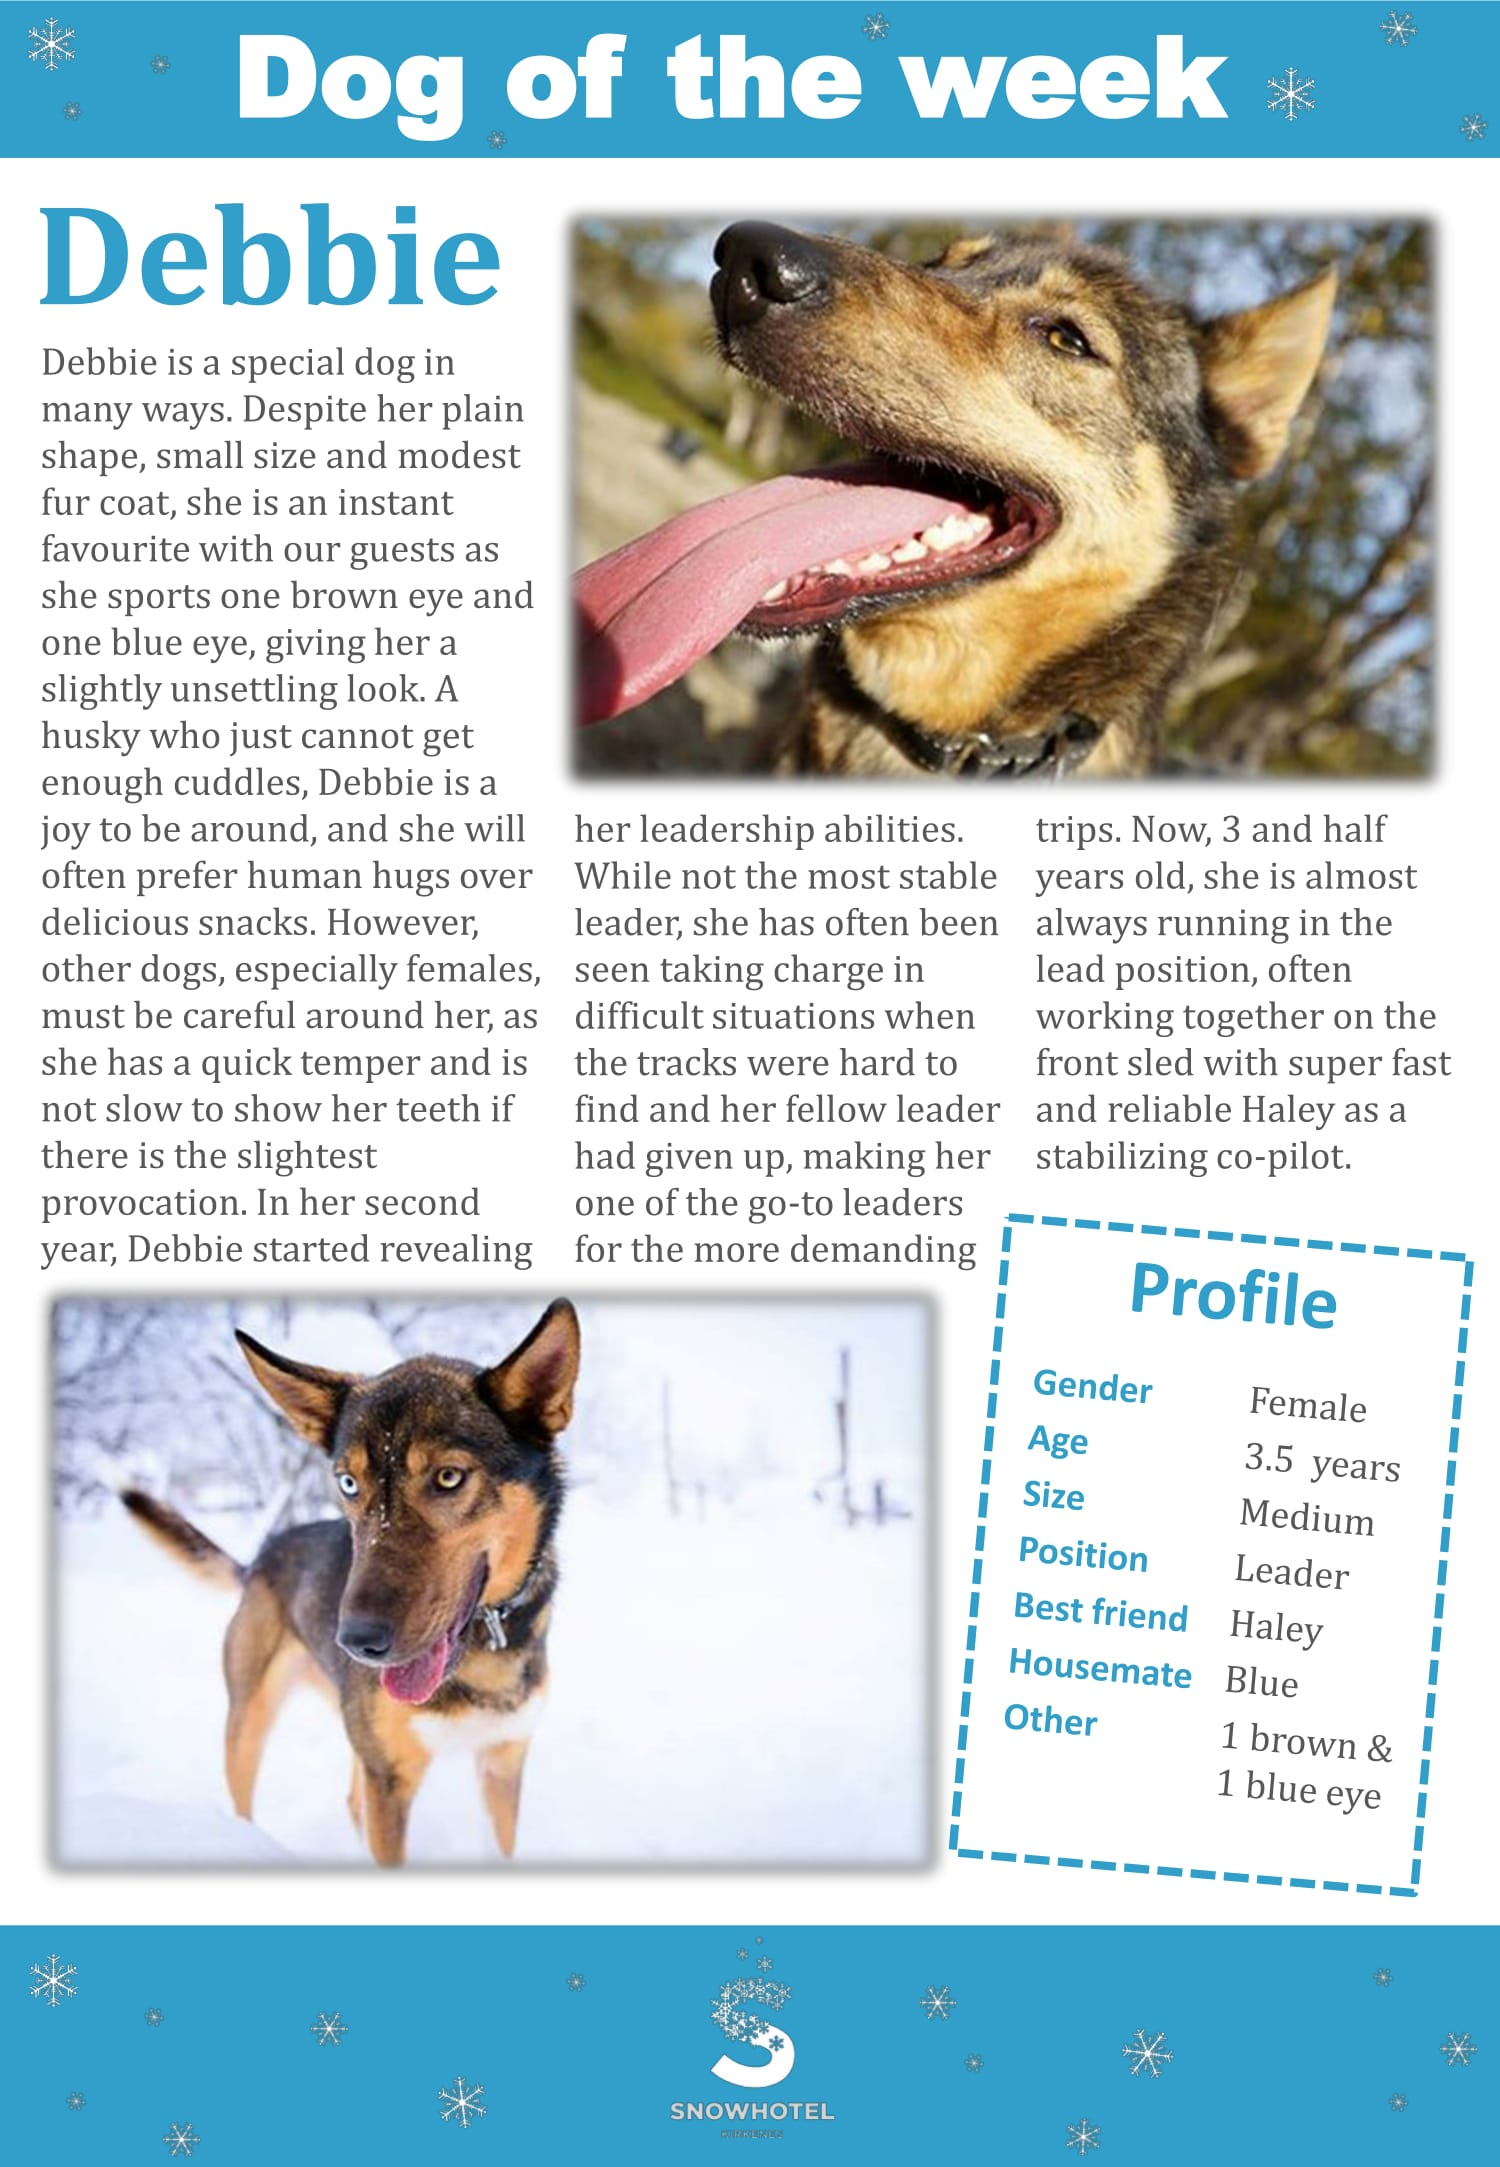 dog_of_the_week_Debbie-1